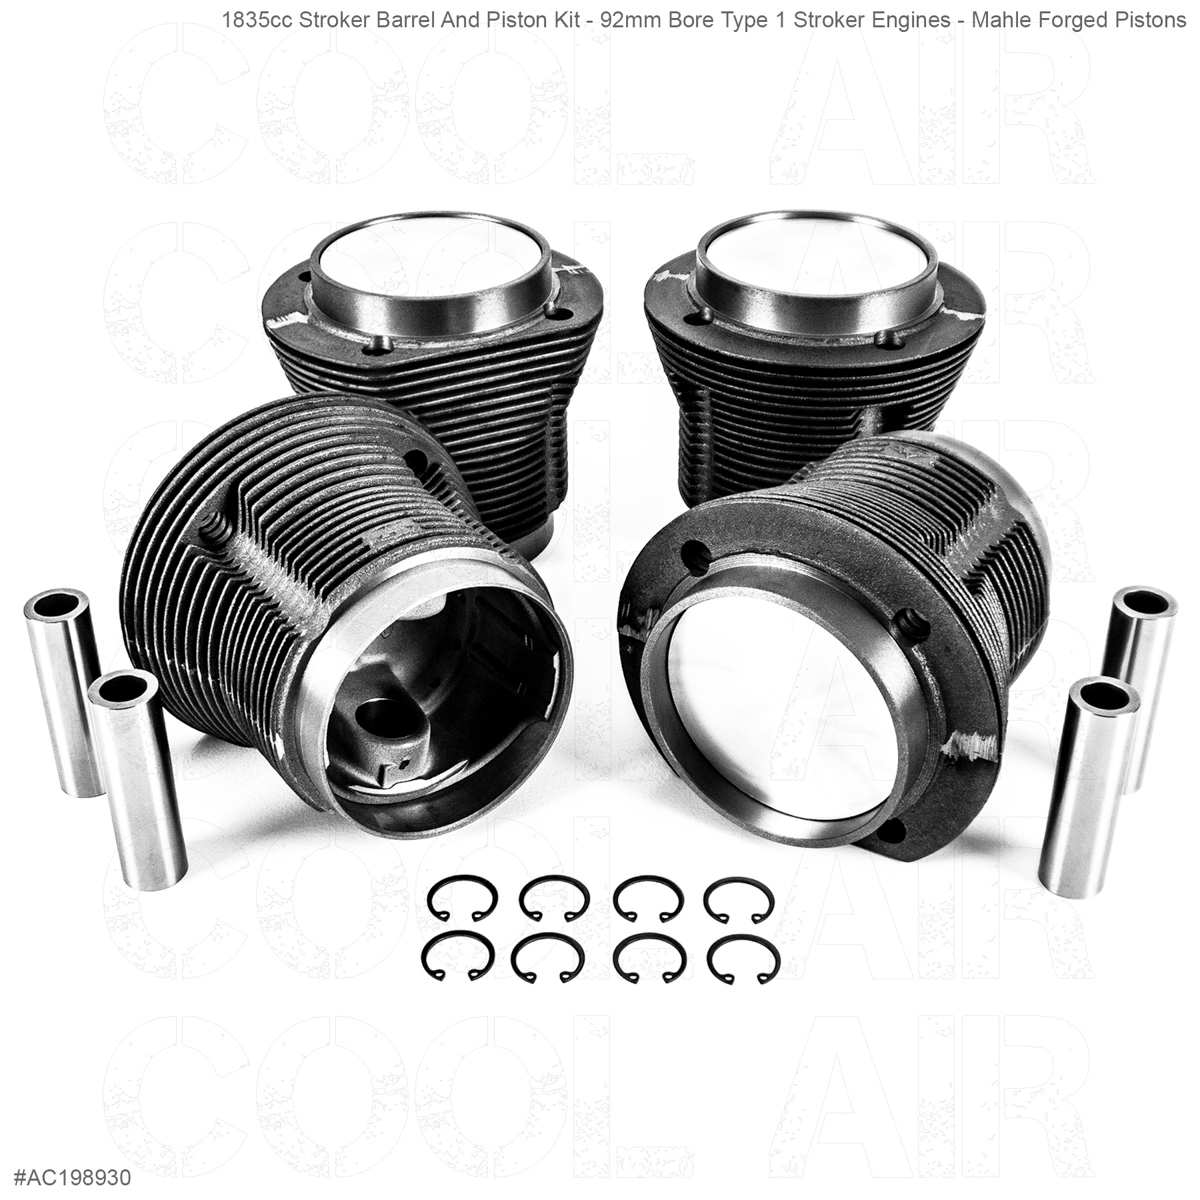 1835cc Stroker Barrel And Piston Kit - 92mm Bore Type 1 Stroker Engines - Mahle Forged Pistons